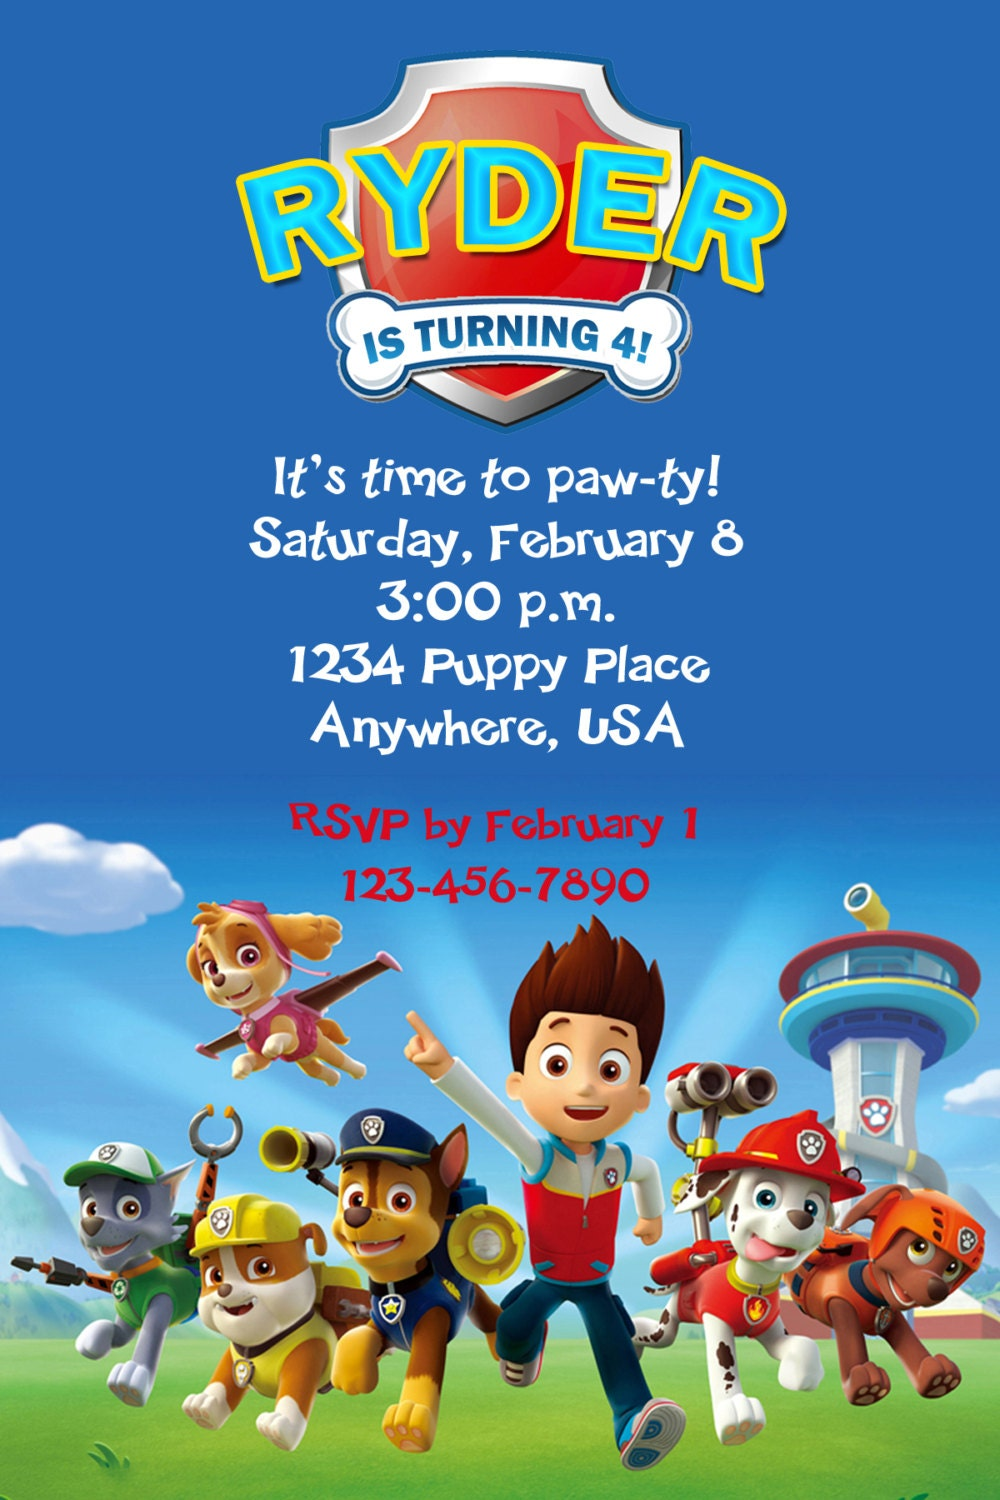 Paw patrol party invitations party invitations ideas for Paw patrol birthday invites